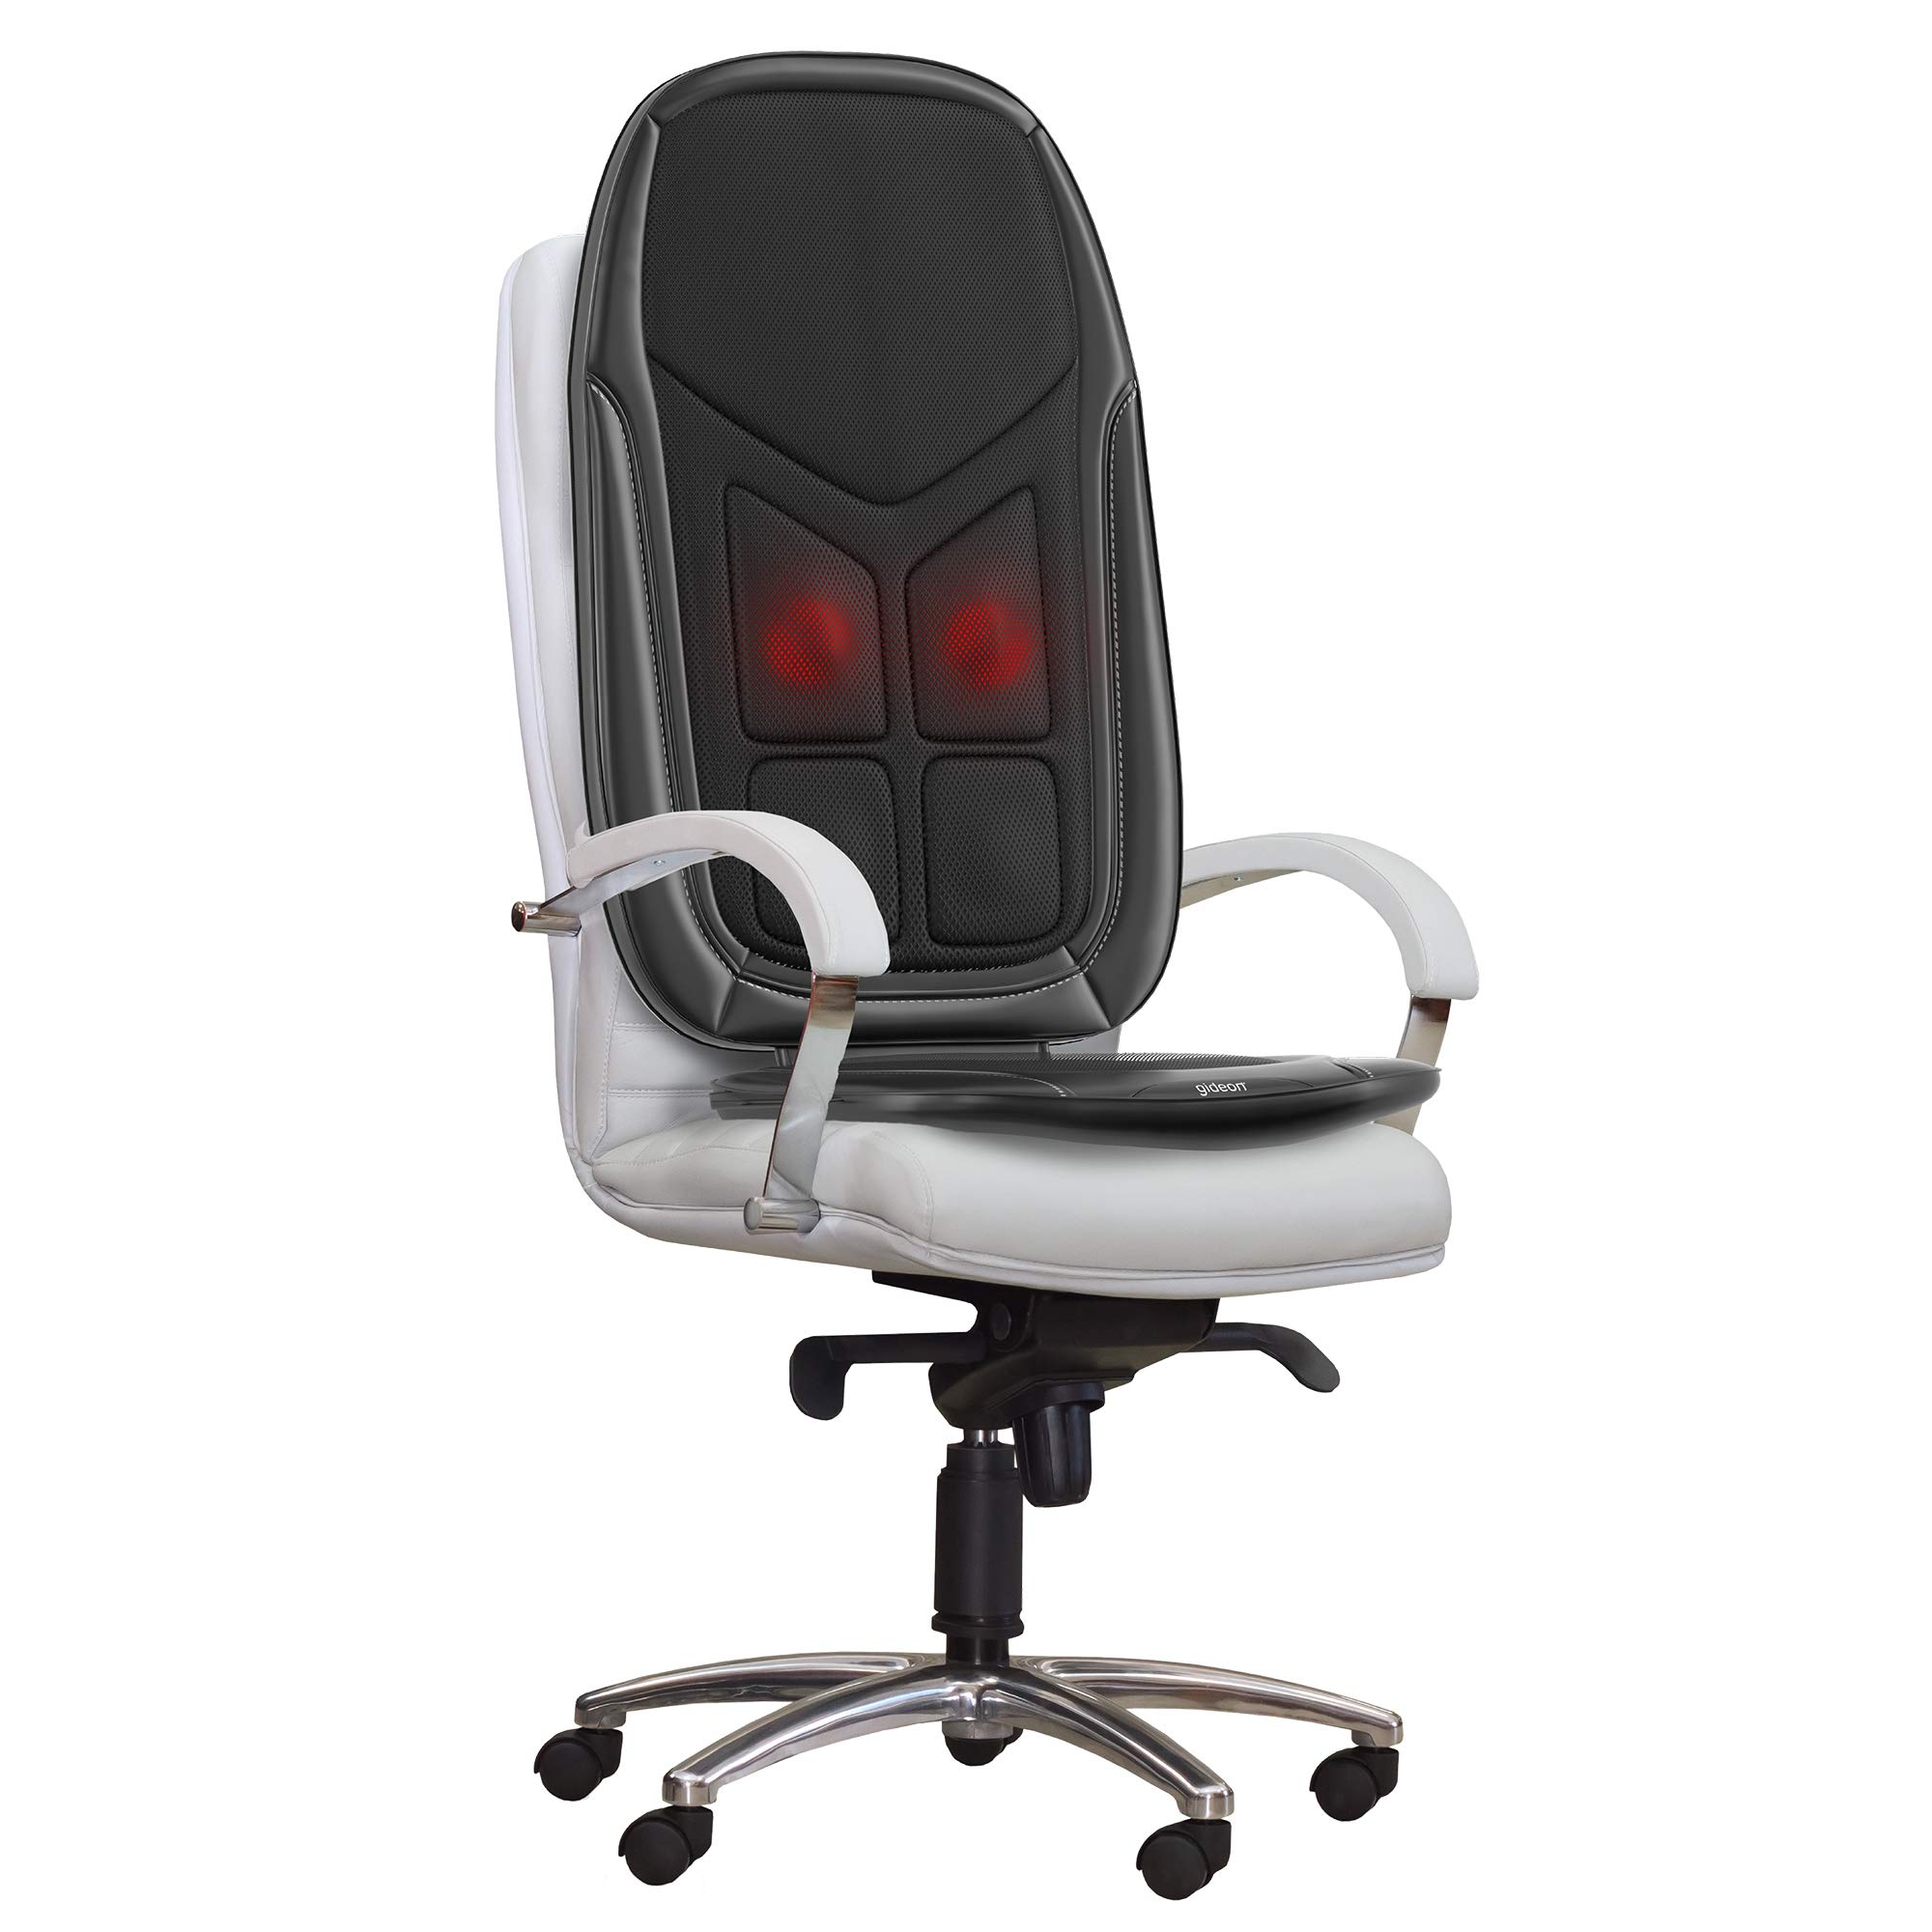 Gideon Shiatsu Massage Seat Cushion with Heat Deep Kneading Back Massager for Car, Home or Office Chair Use